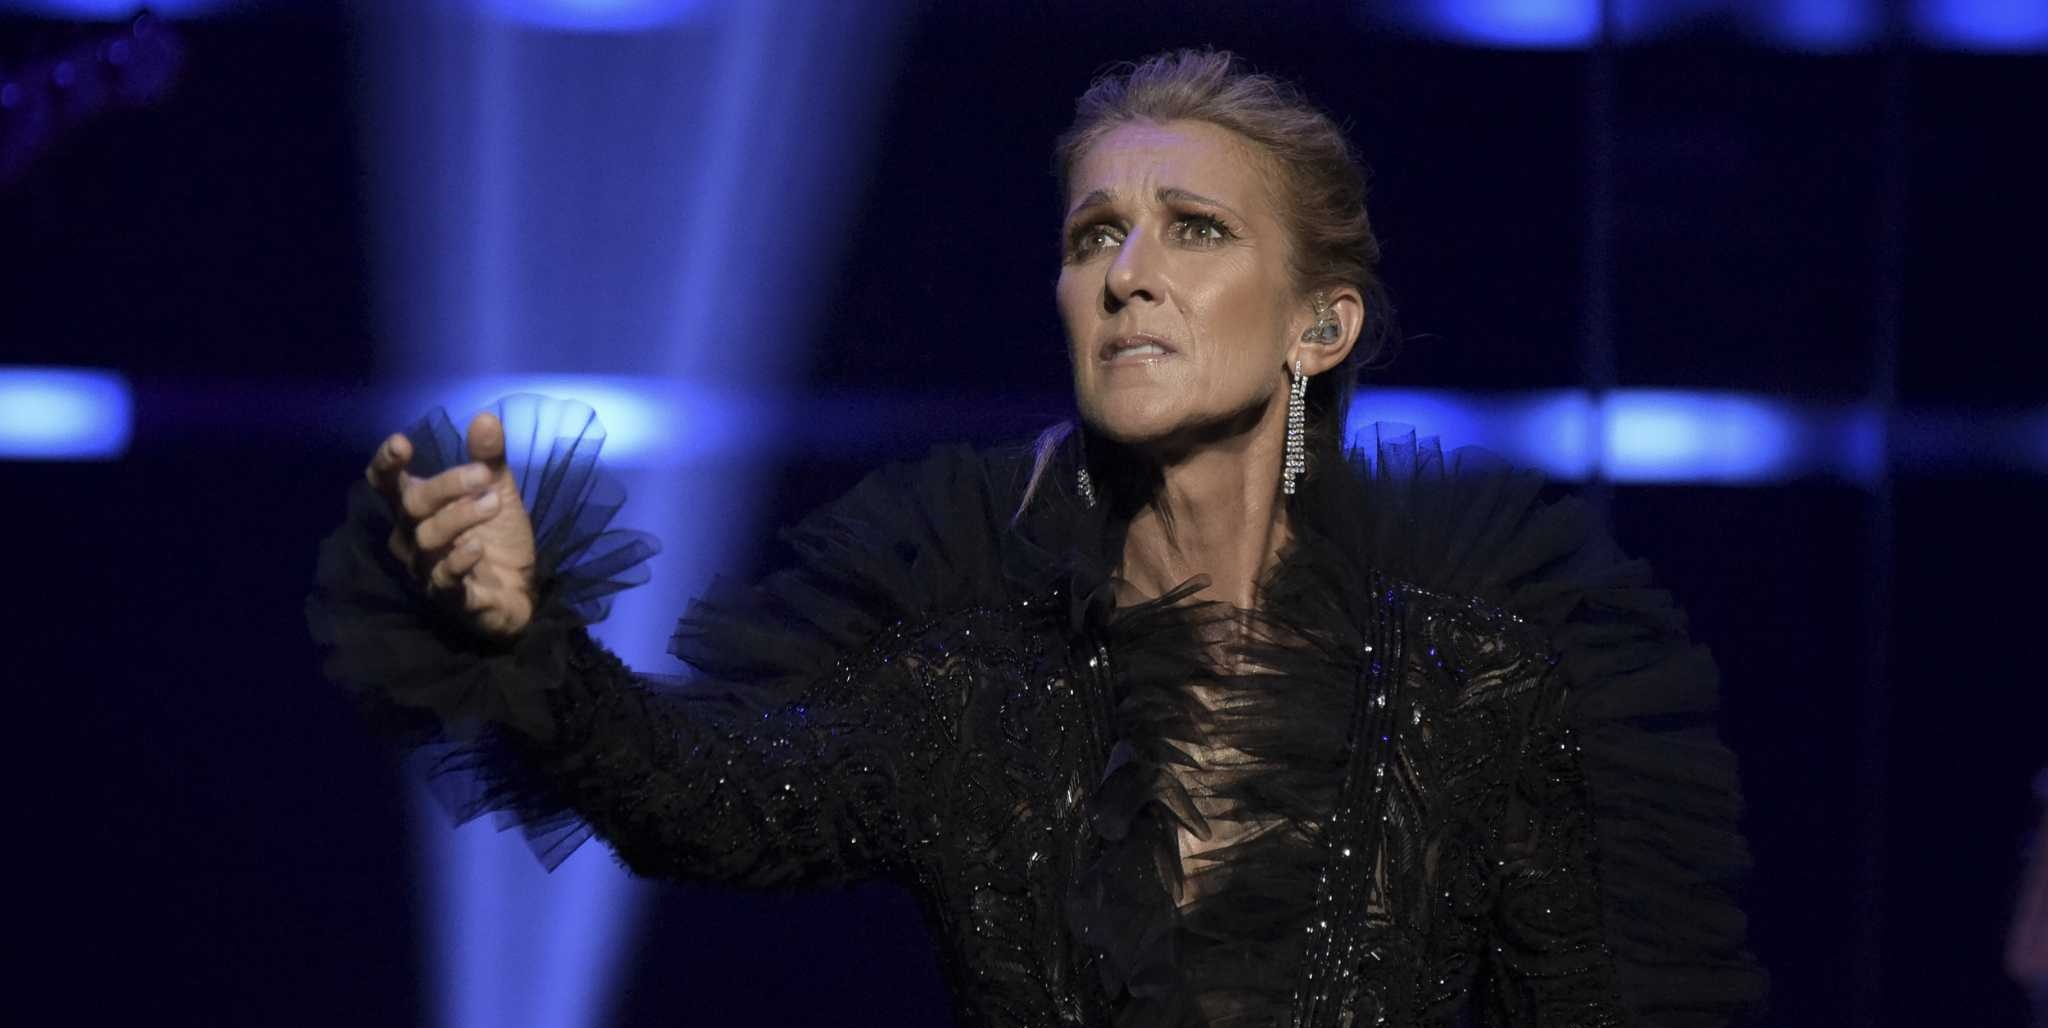 Watch: Celine Dion Delivers Stellar 'My Heart Will Go On' Performance At 'Courage Tour' Announcement Event